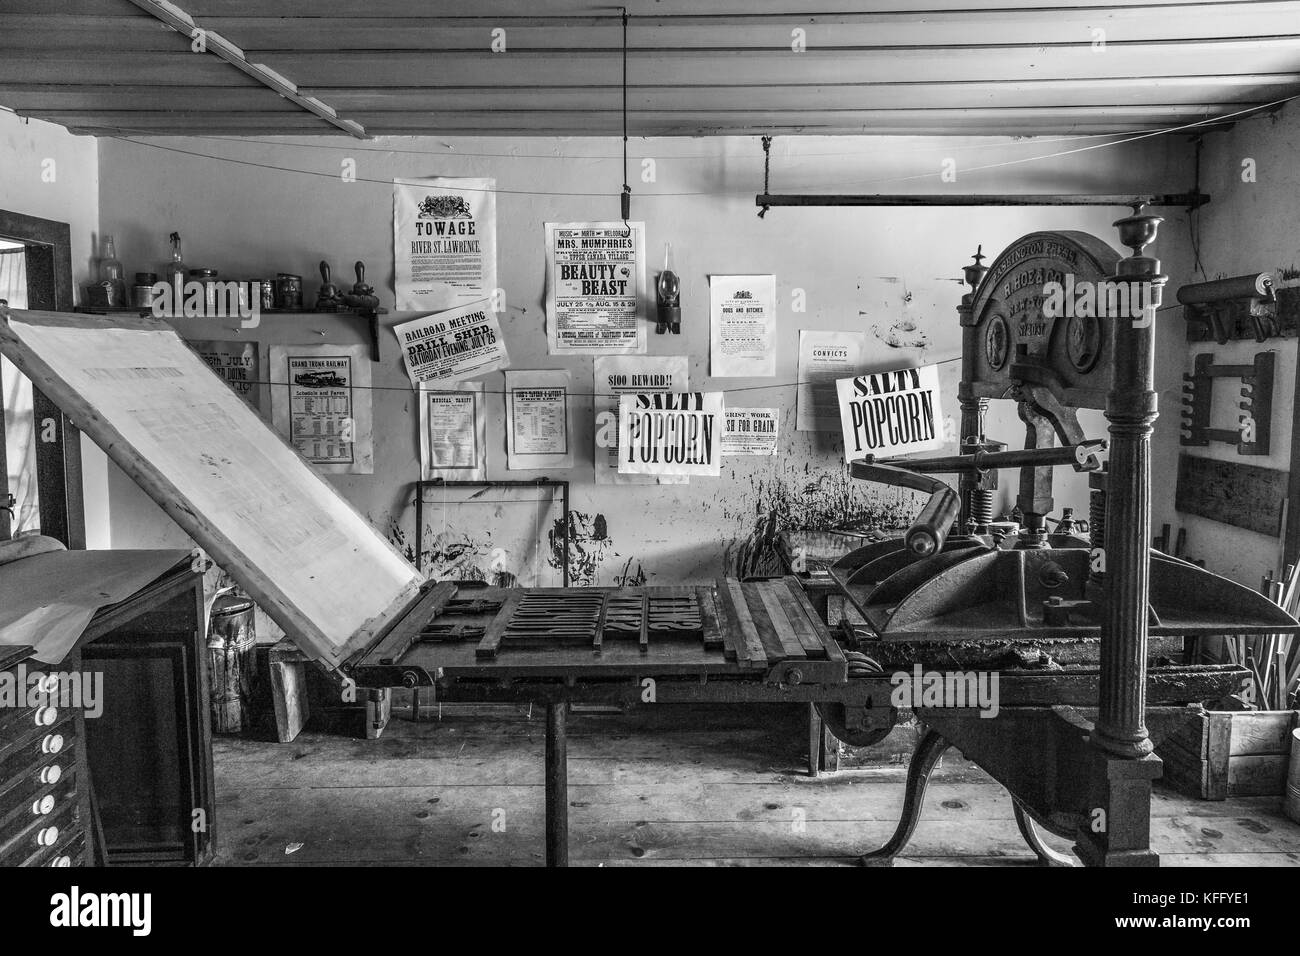 Printing Press Newspaper Black And White Stock Photos Images Alamy Diagram Year 1 2 Context Rotary Image